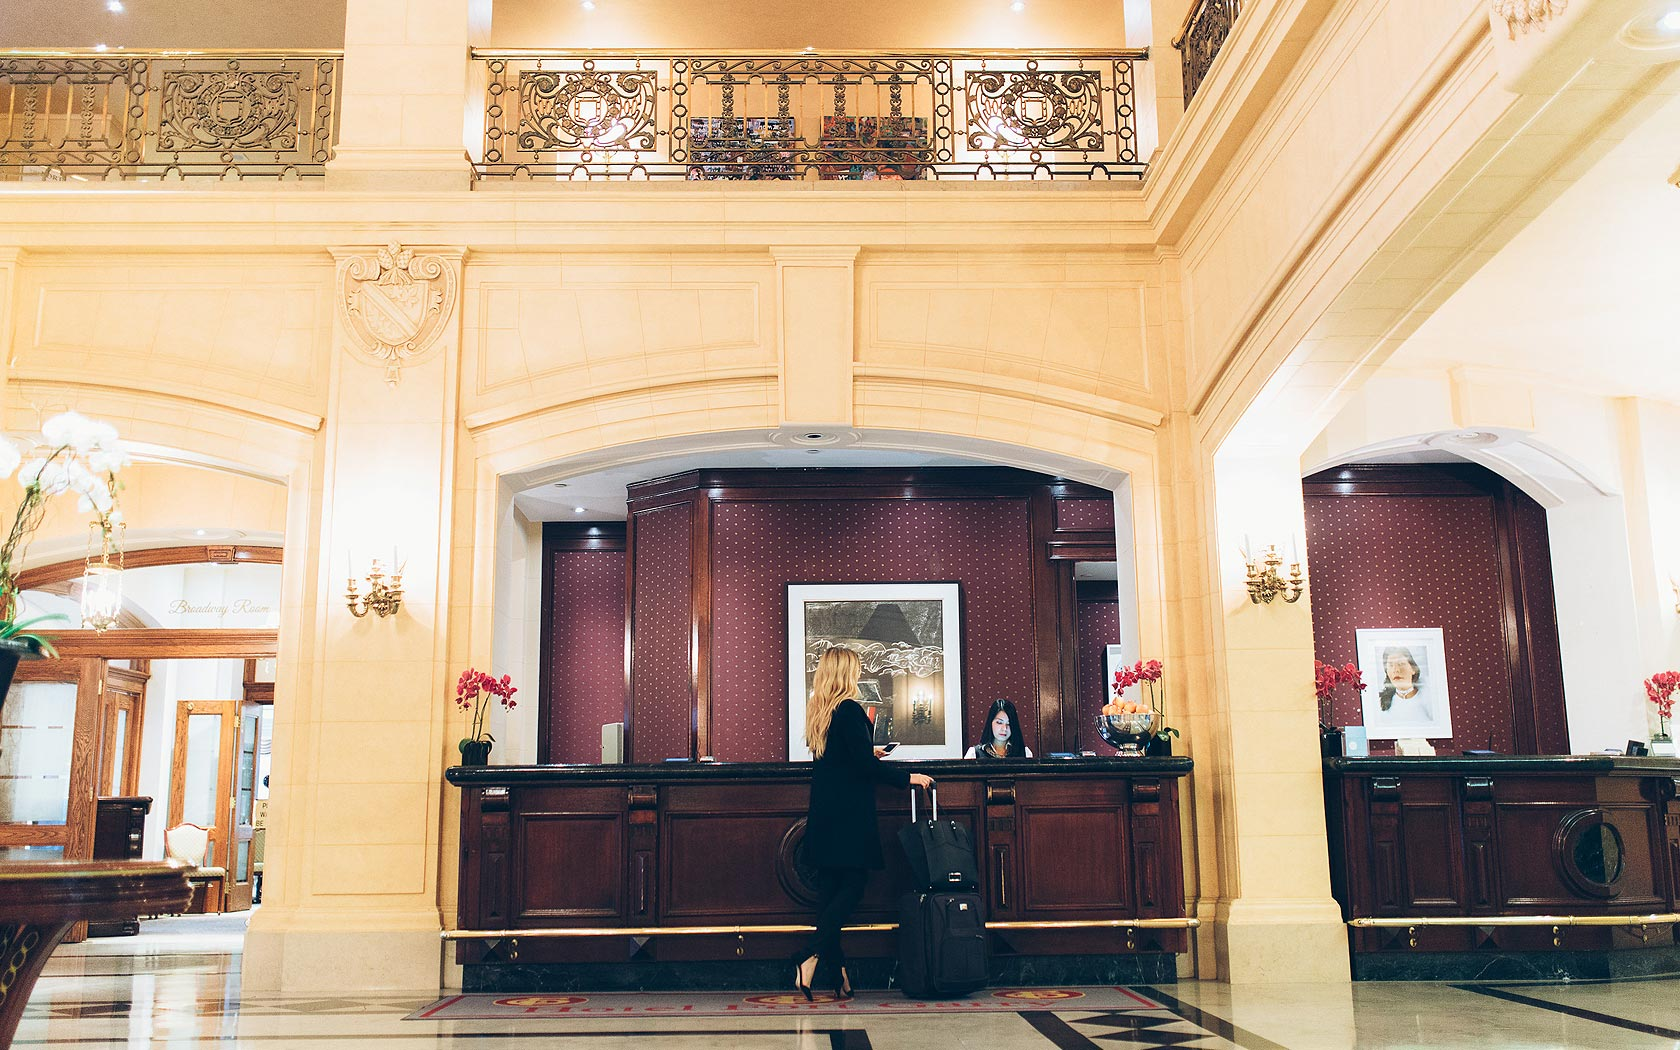 woman checking into hotel at desk